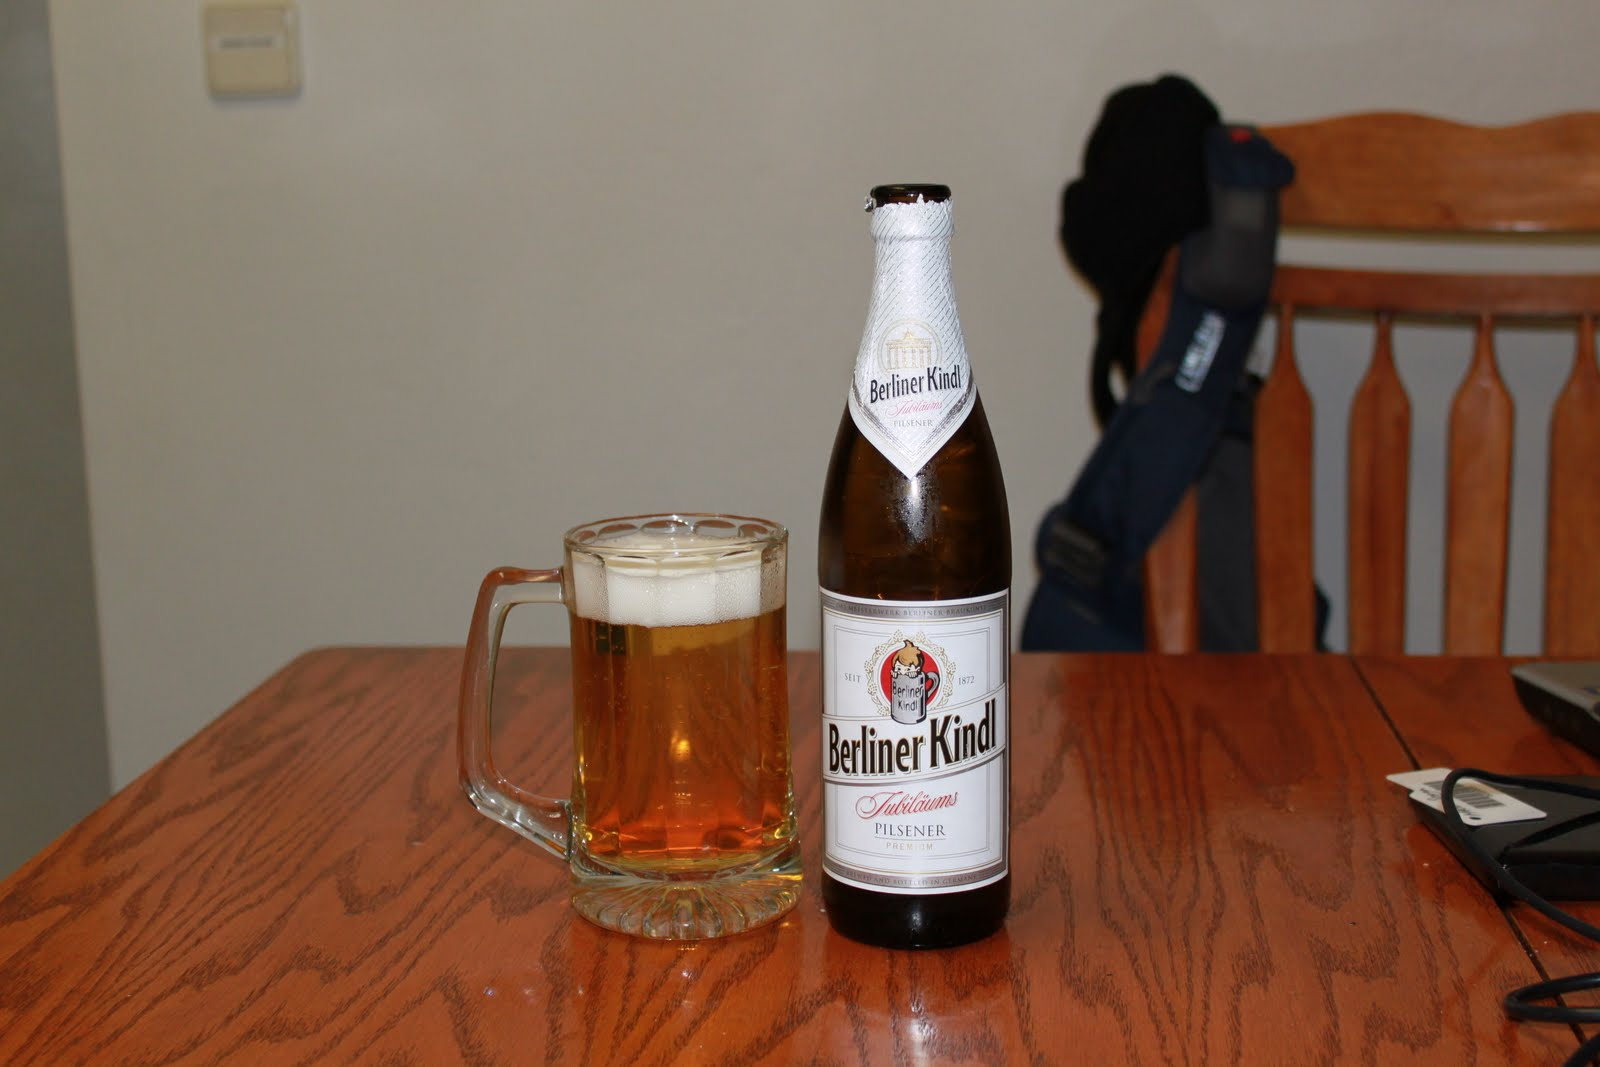 Beer Drinker With A Triathlon Problem: Special Beer Review ...